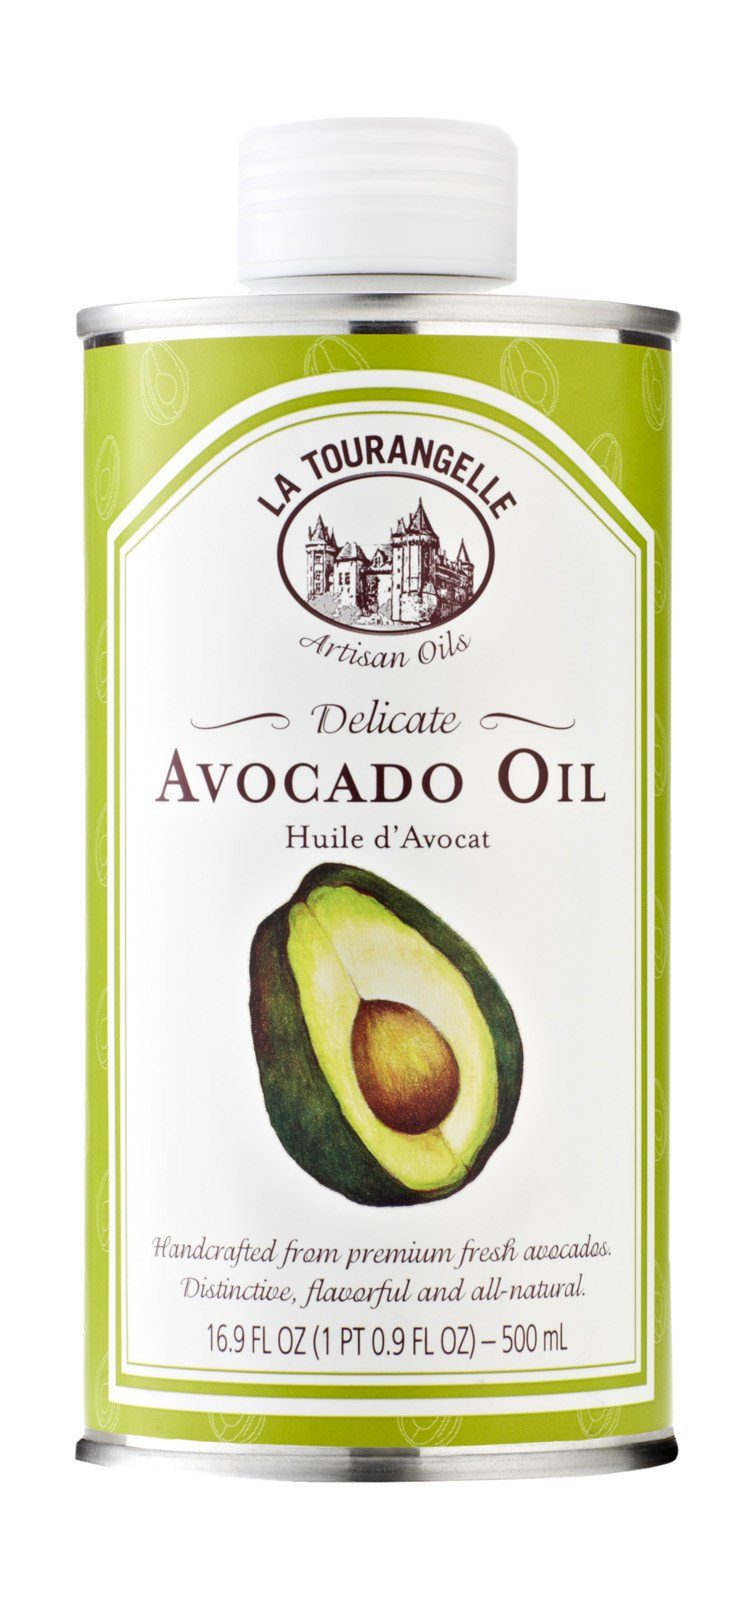 Food & Drink - La Tourangelle - Avocado Oil, 500ml